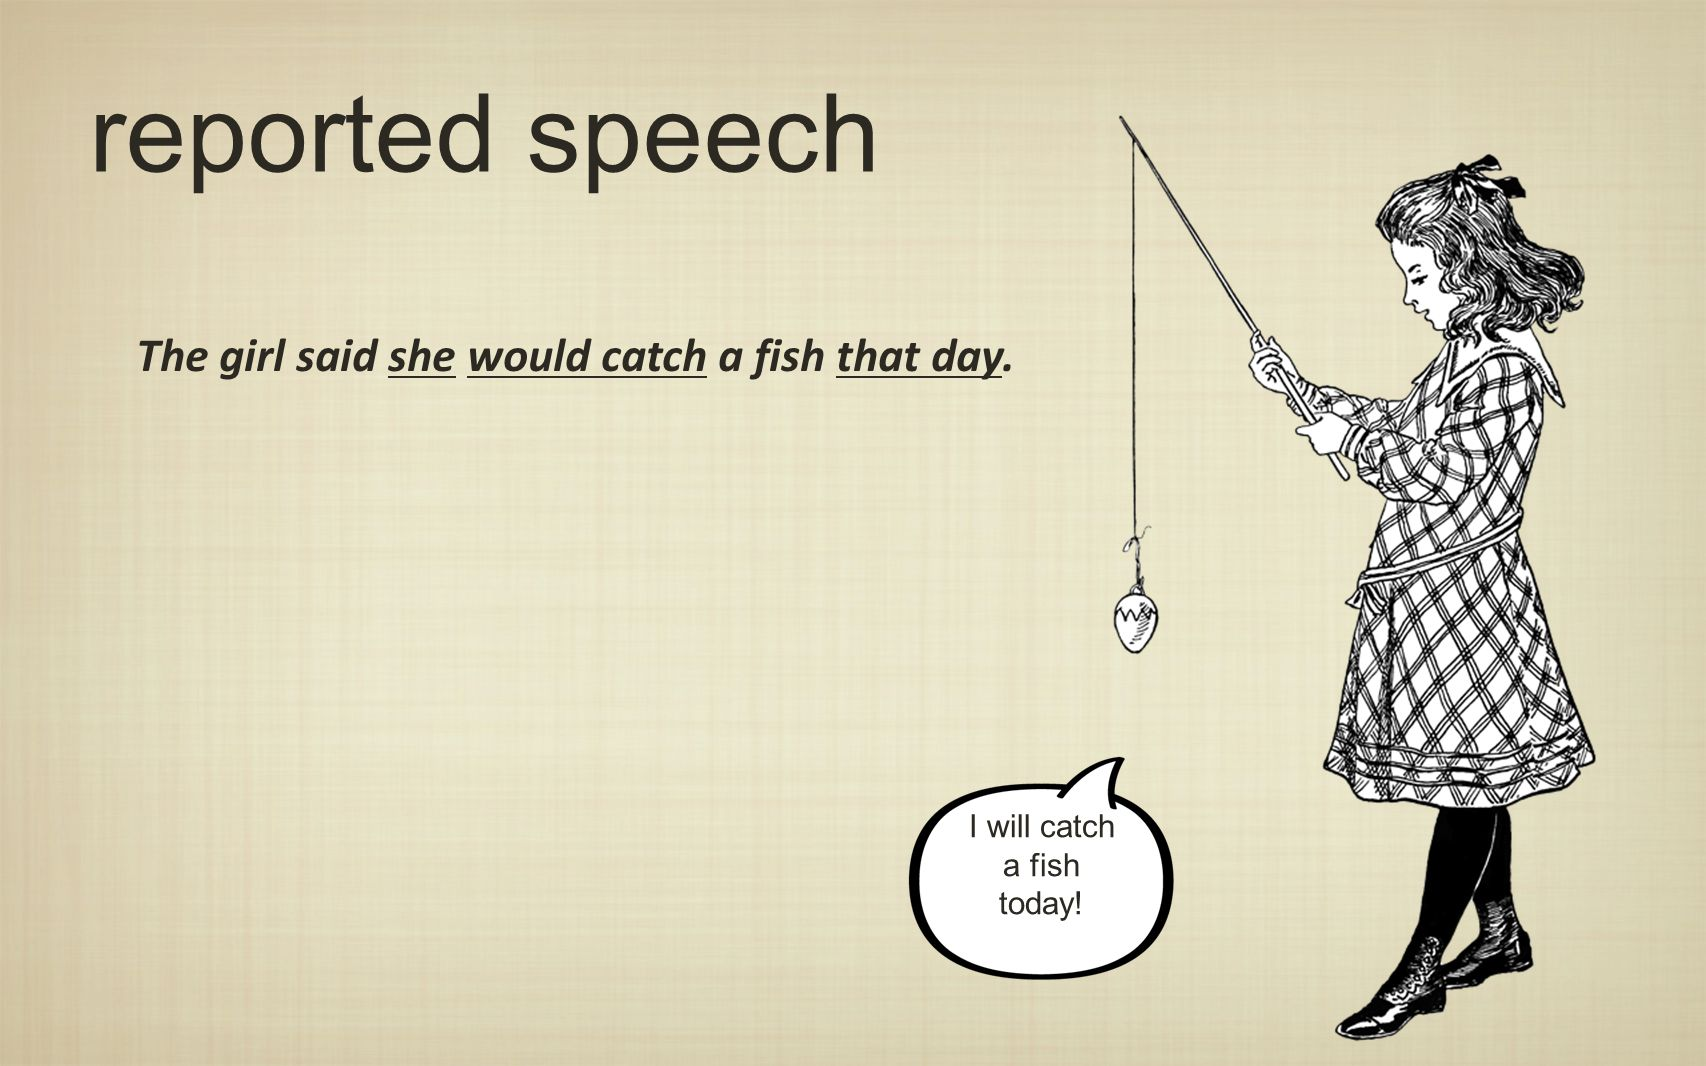 reported speech The girl said she would catch a fish that day.